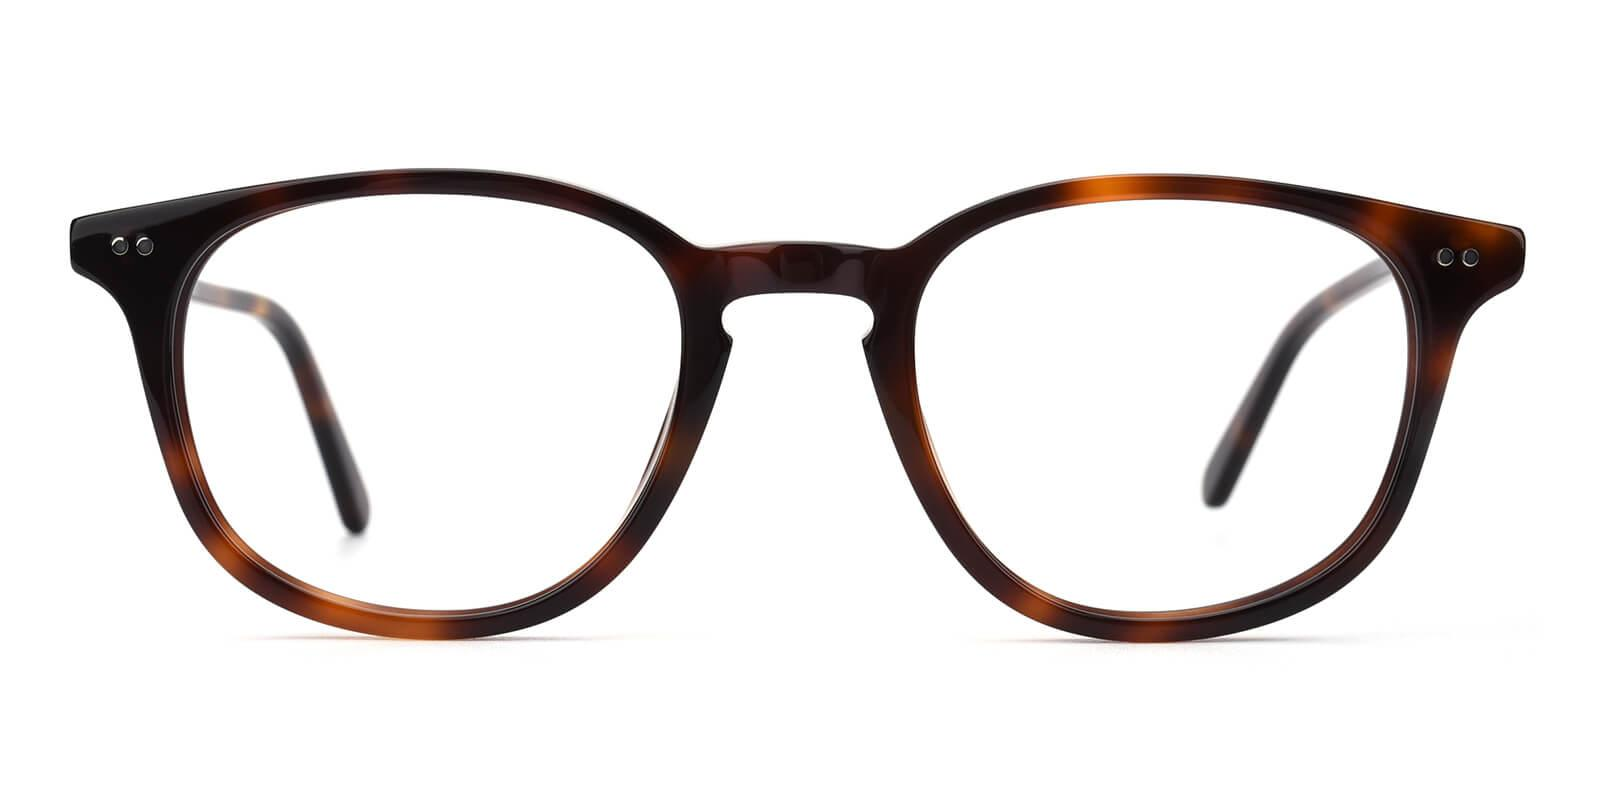 Trendiary-Tortoise-Square-Acetate-Eyeglasses-additional2